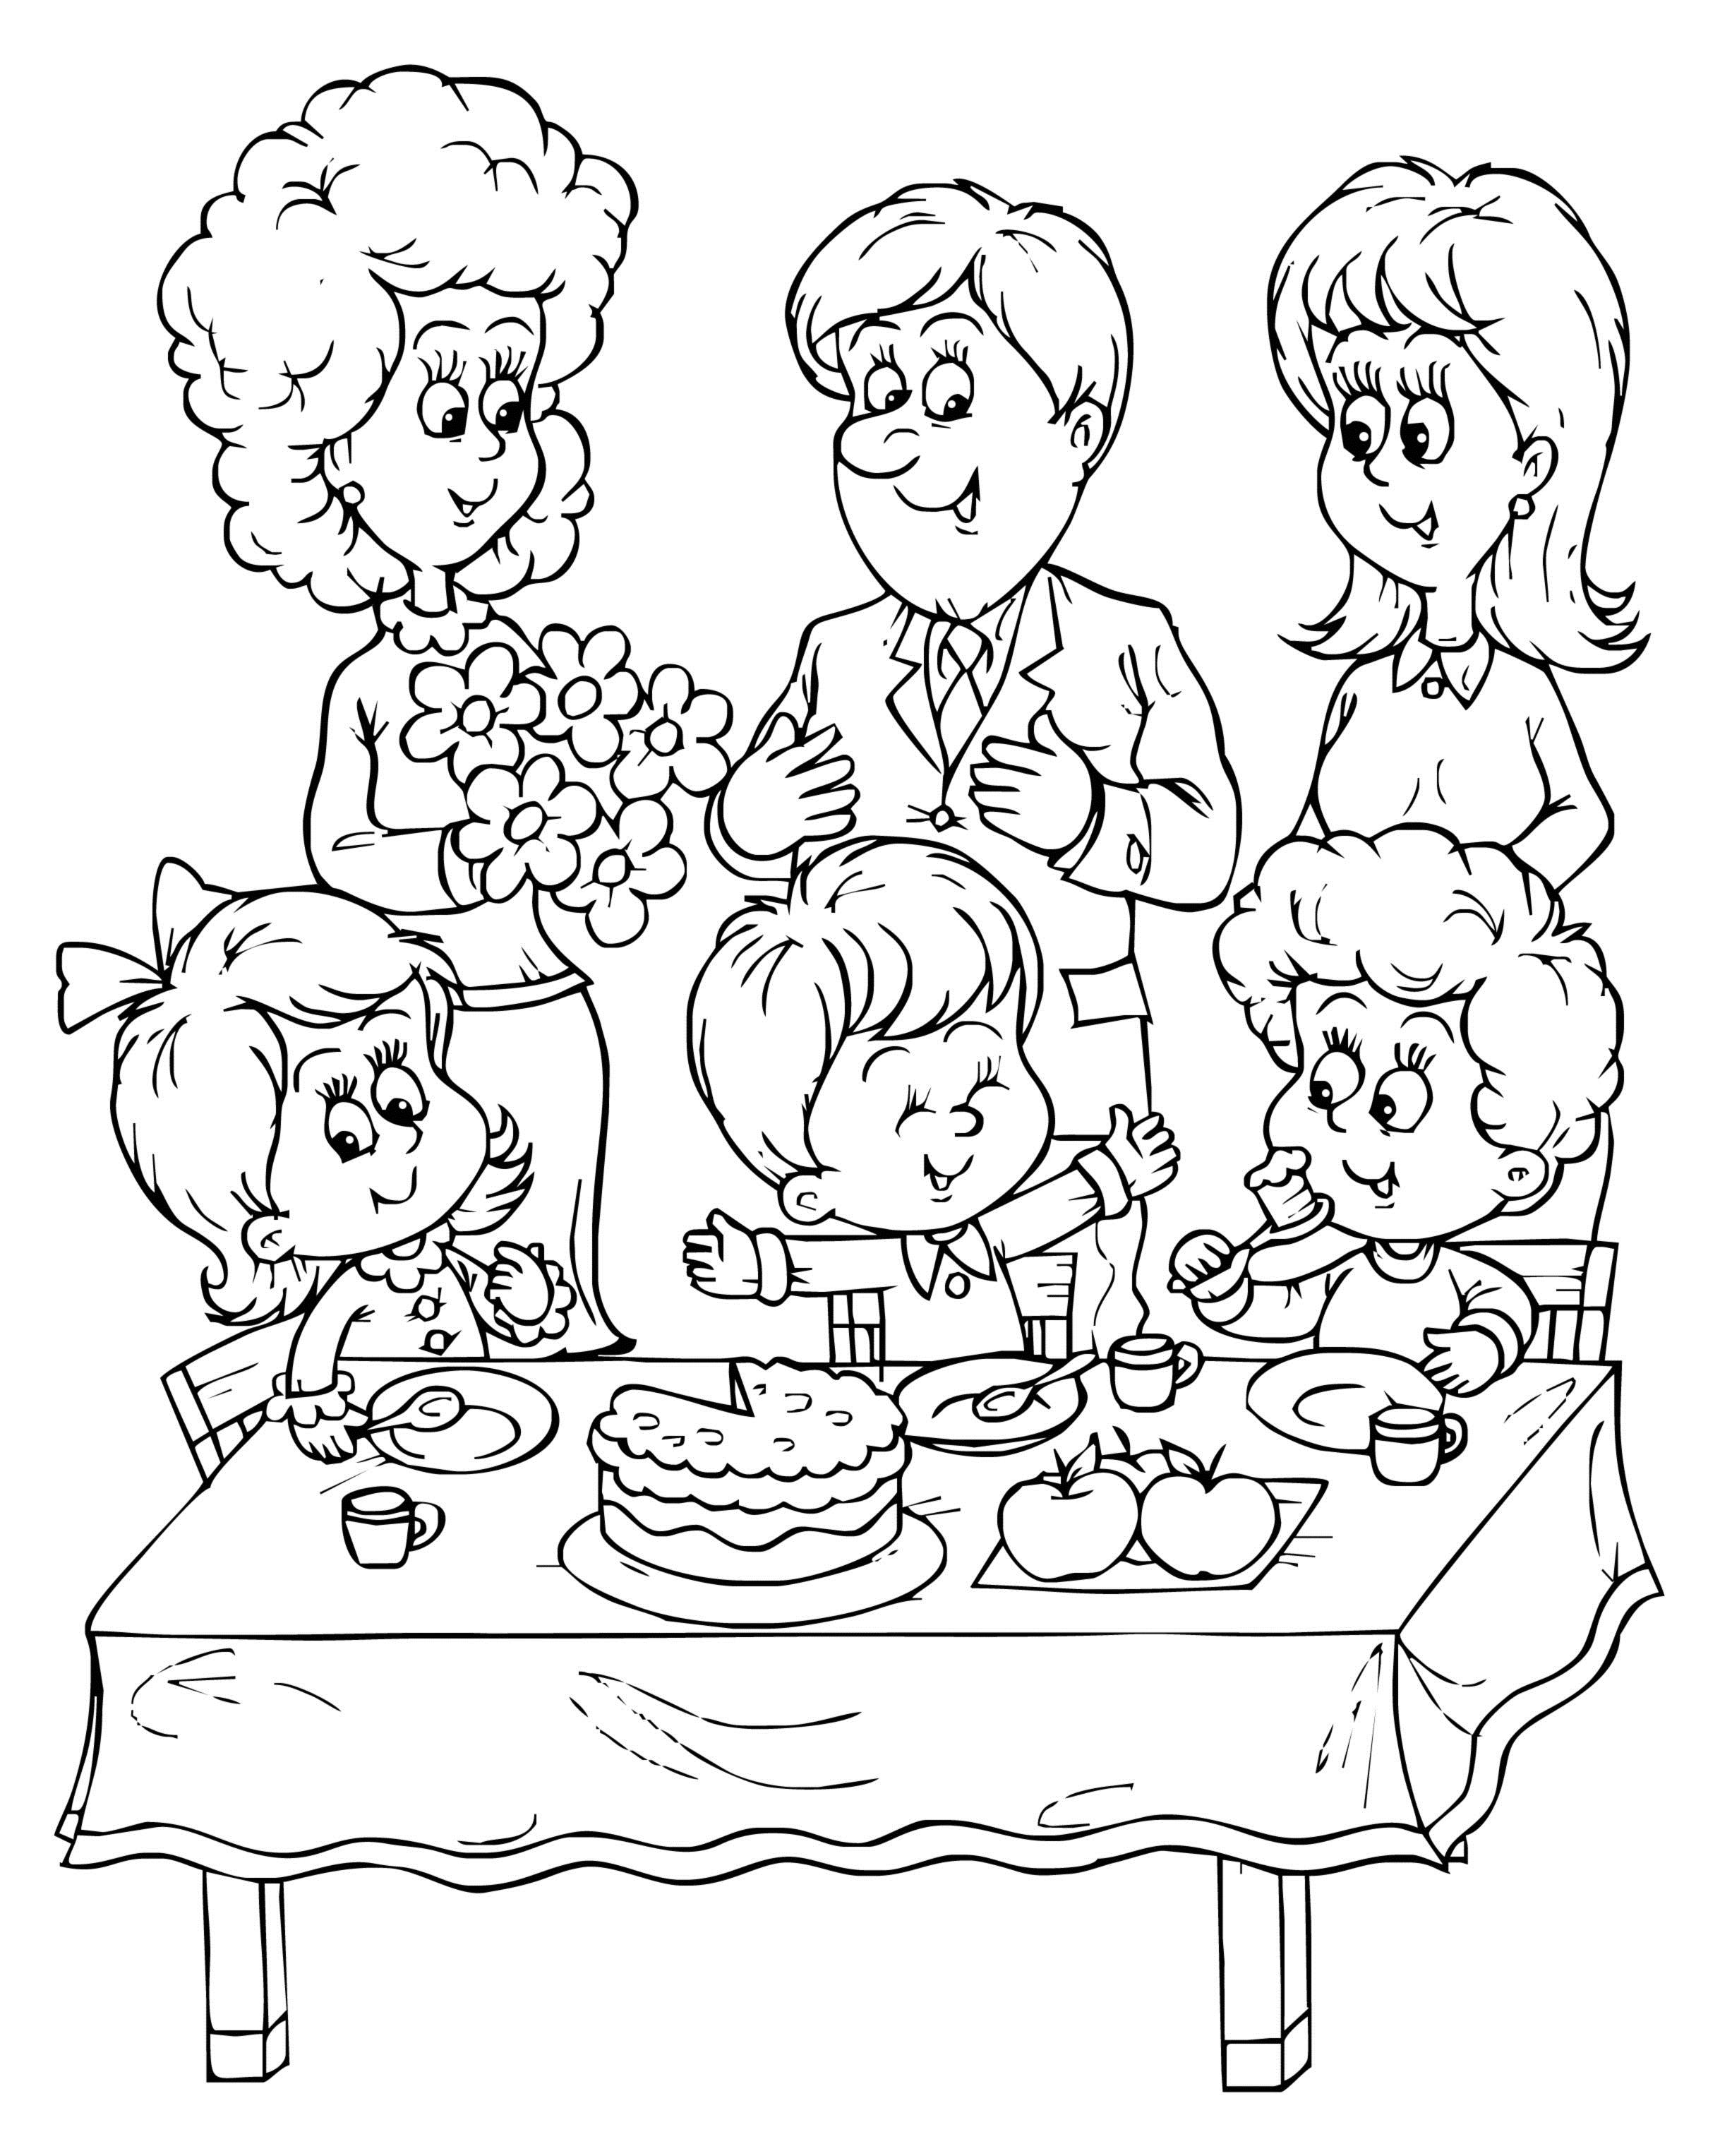 birthday party drawing step by step ; happy-birthday-drawing-pictures-42